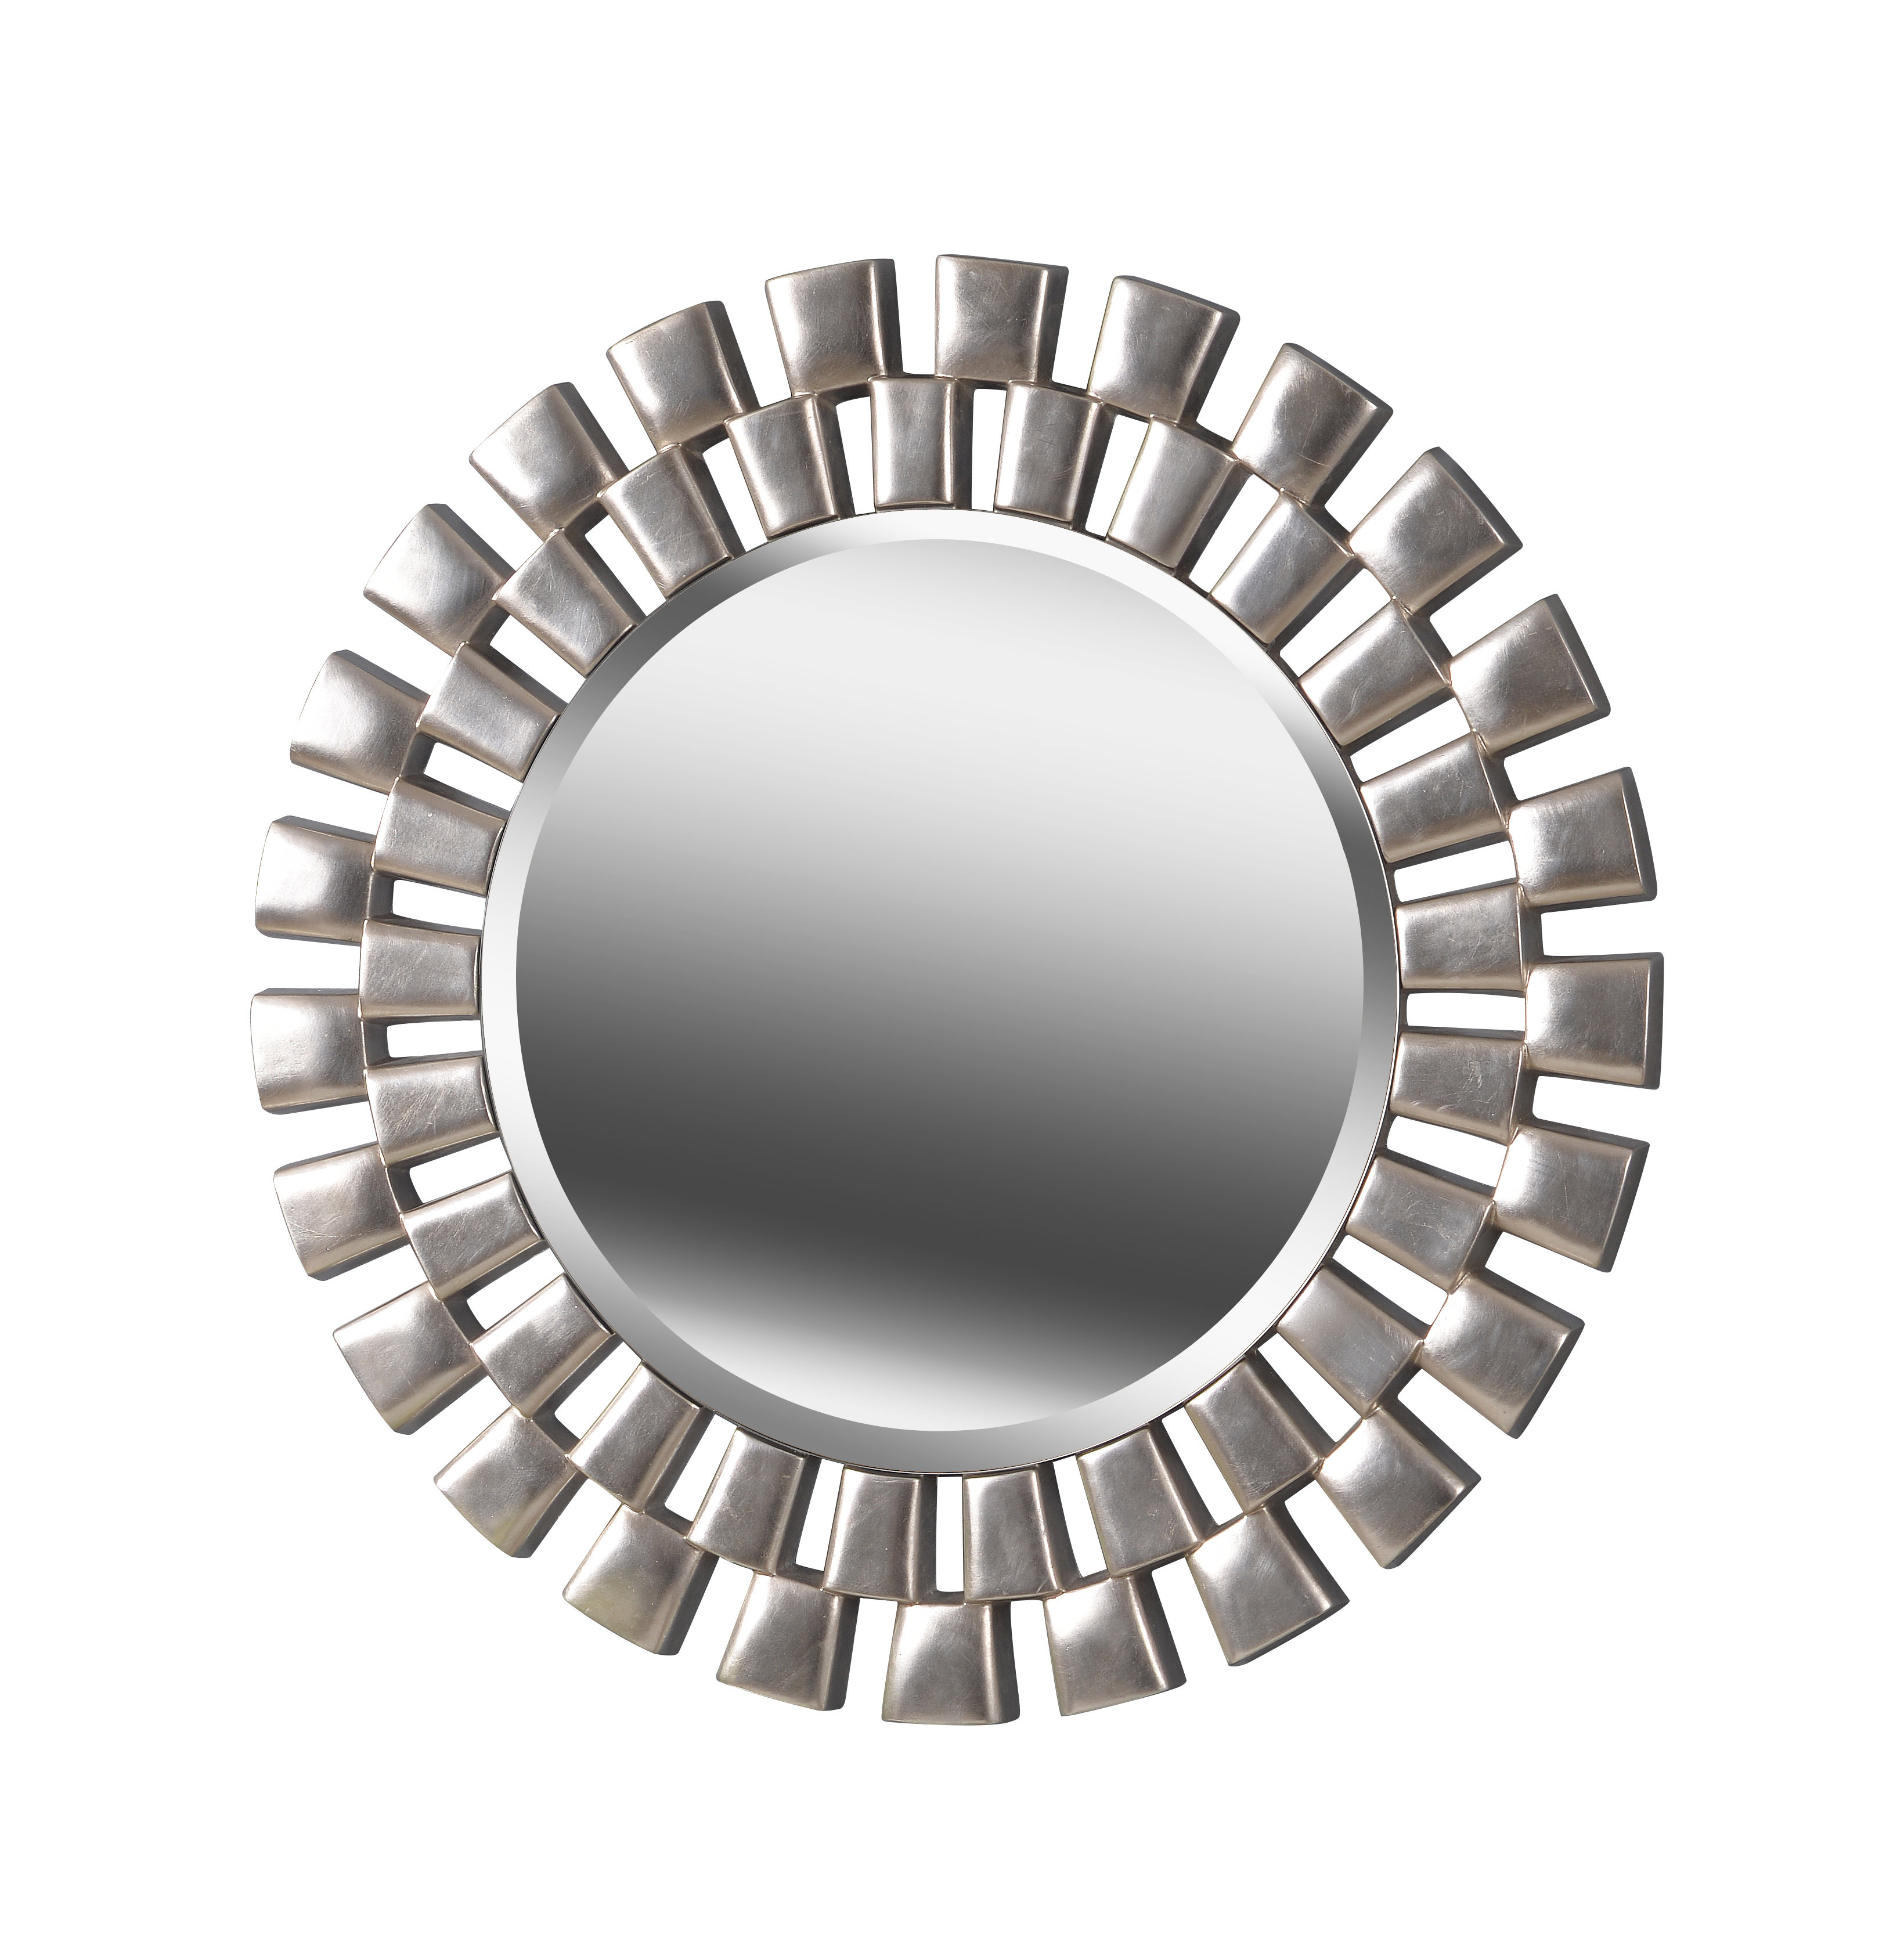 Glam Beveled Accent Mirror Intended For Most Current Tata Openwork Round Wall Mirrors (View 7 of 20)